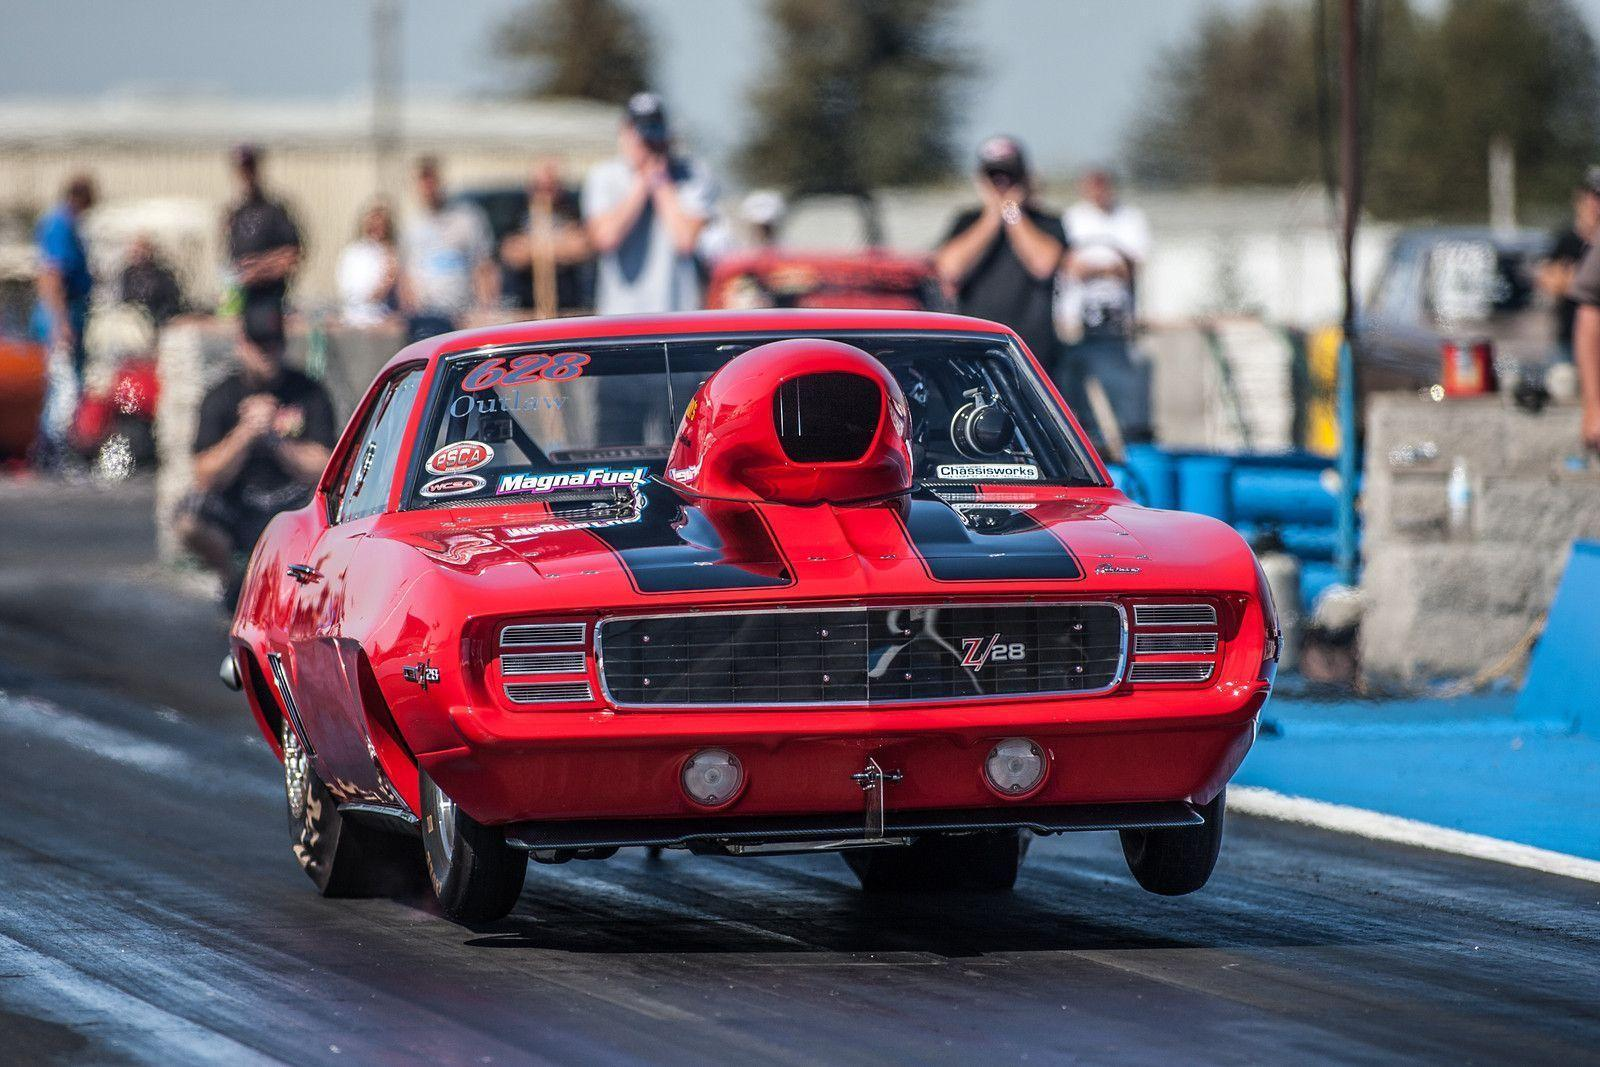 NHRA drag racing race hot rod rods chevrolet camaro f wallpaper ...